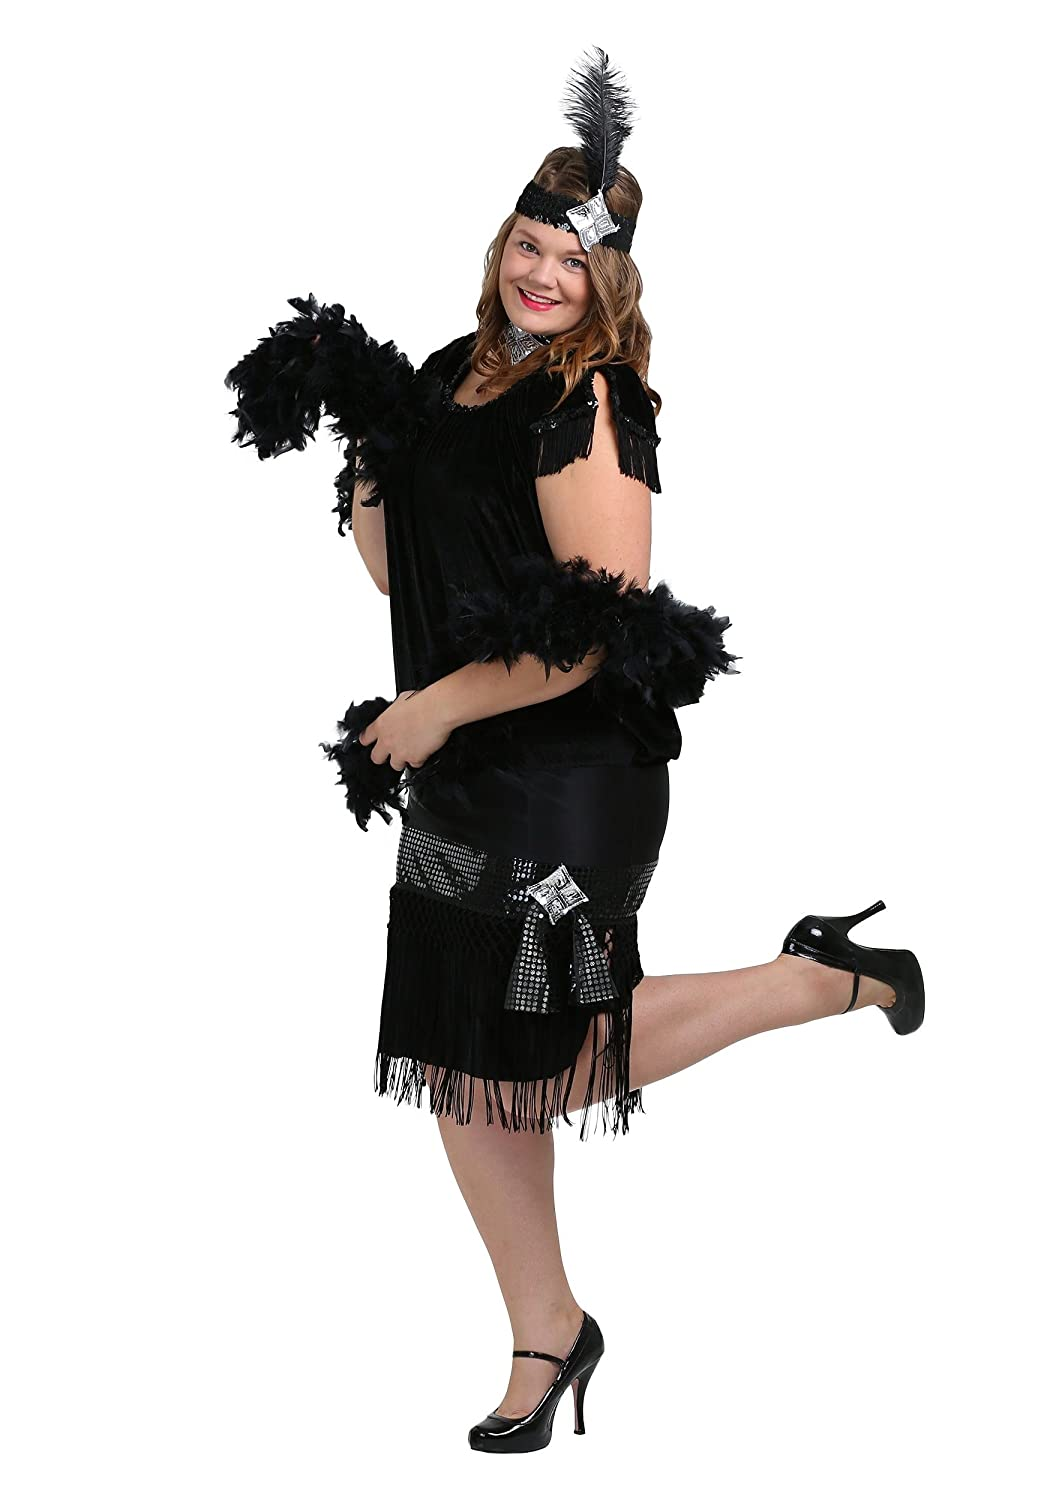 Flapper Costumes, Flapper Girl Costume FunCostumes Womens Deluxe Velvet Flapper Costume $59.99 AT vintagedancer.com